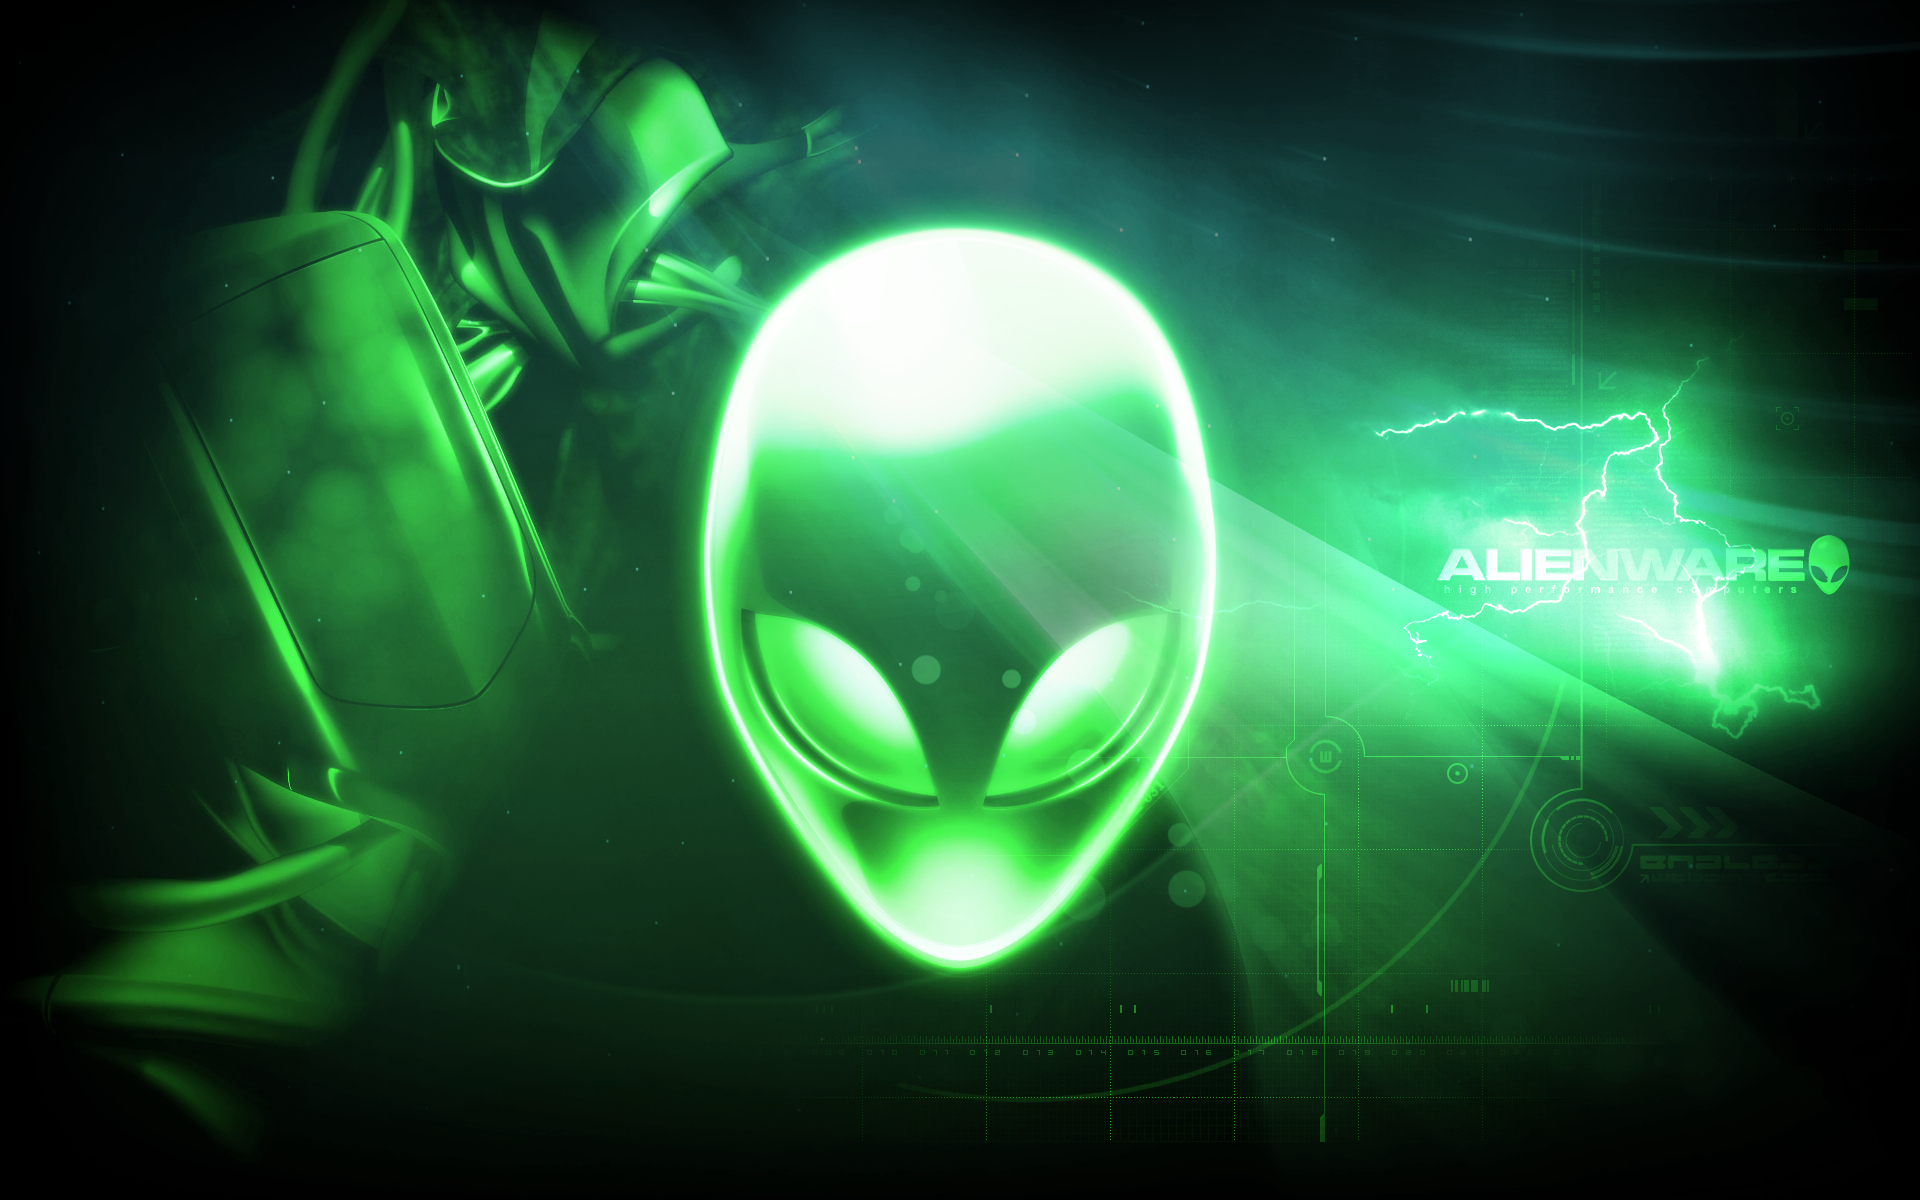 Tags fondos imagenes Wallpaper Alienware 1920x1200